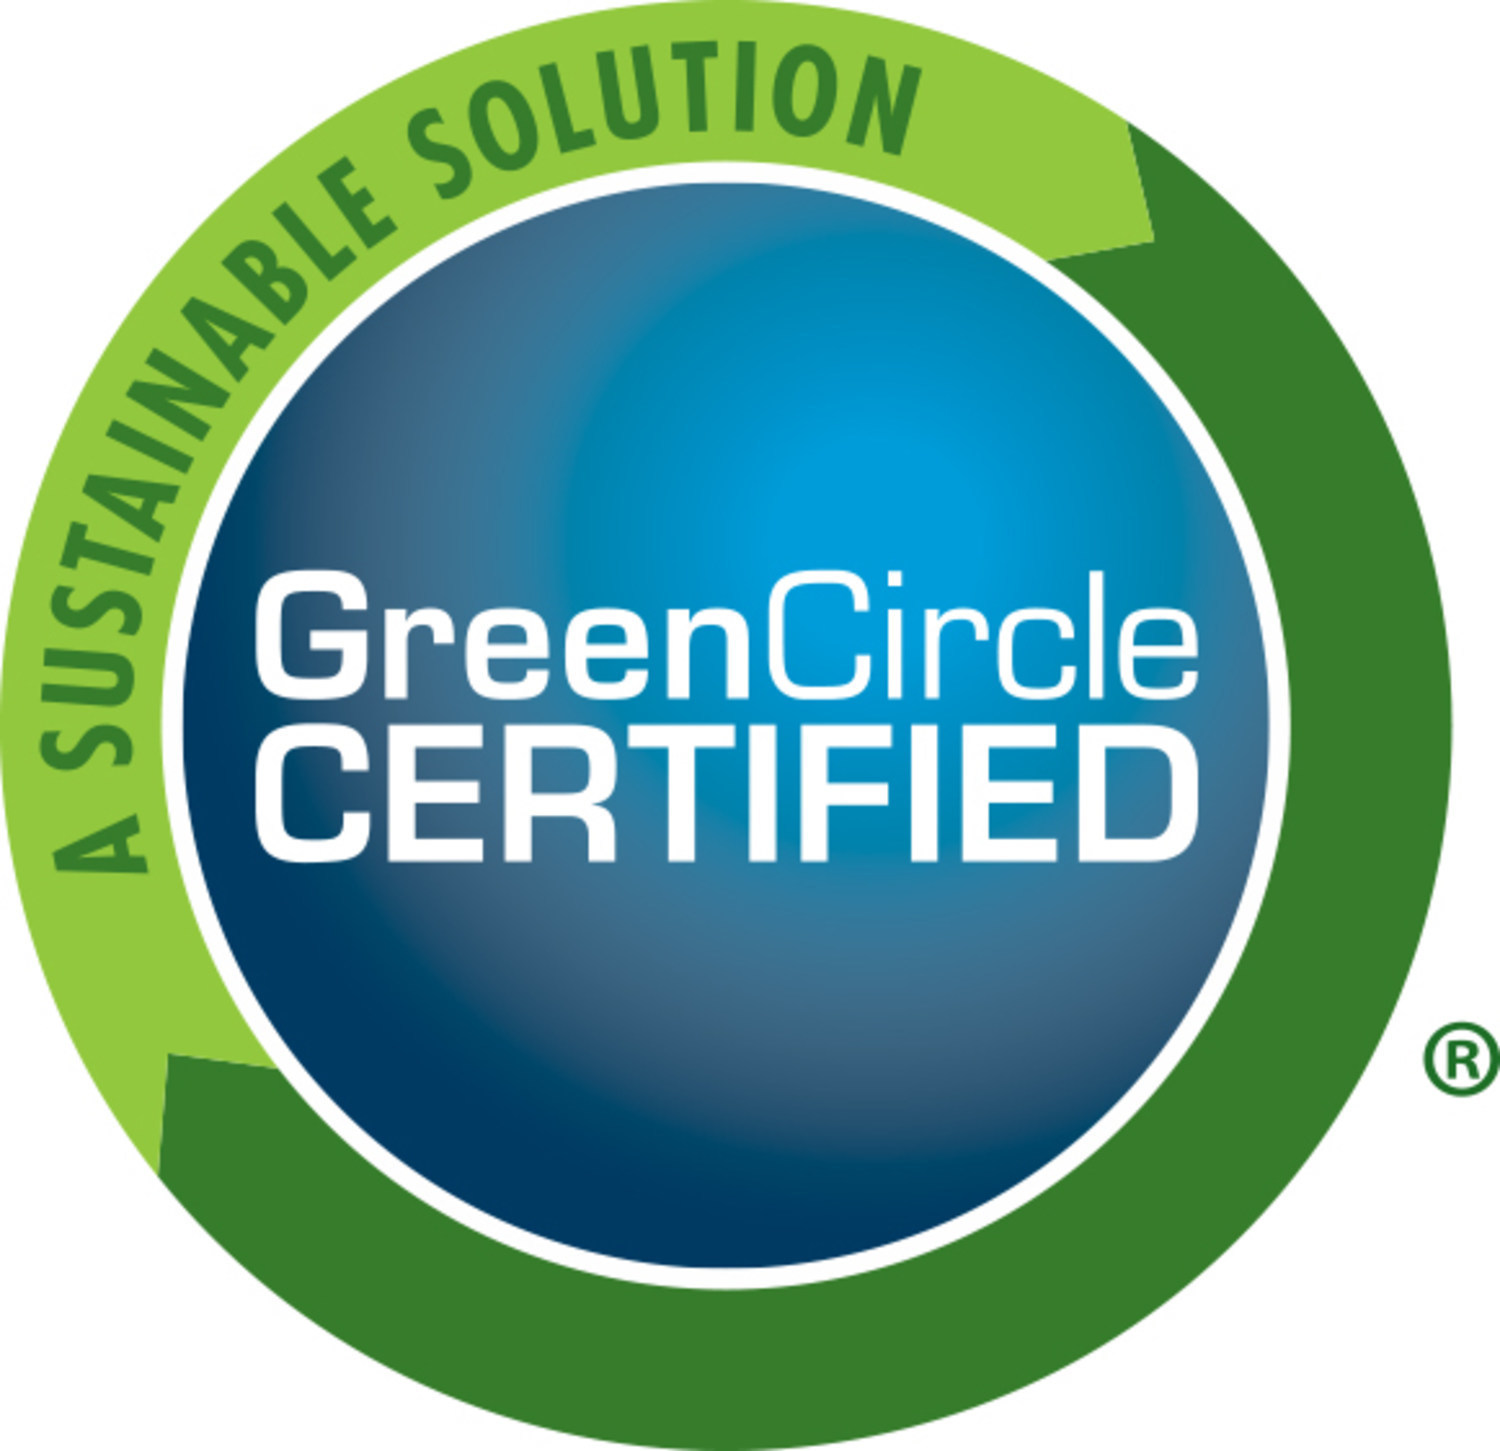 GreenCircle Certified, LLC